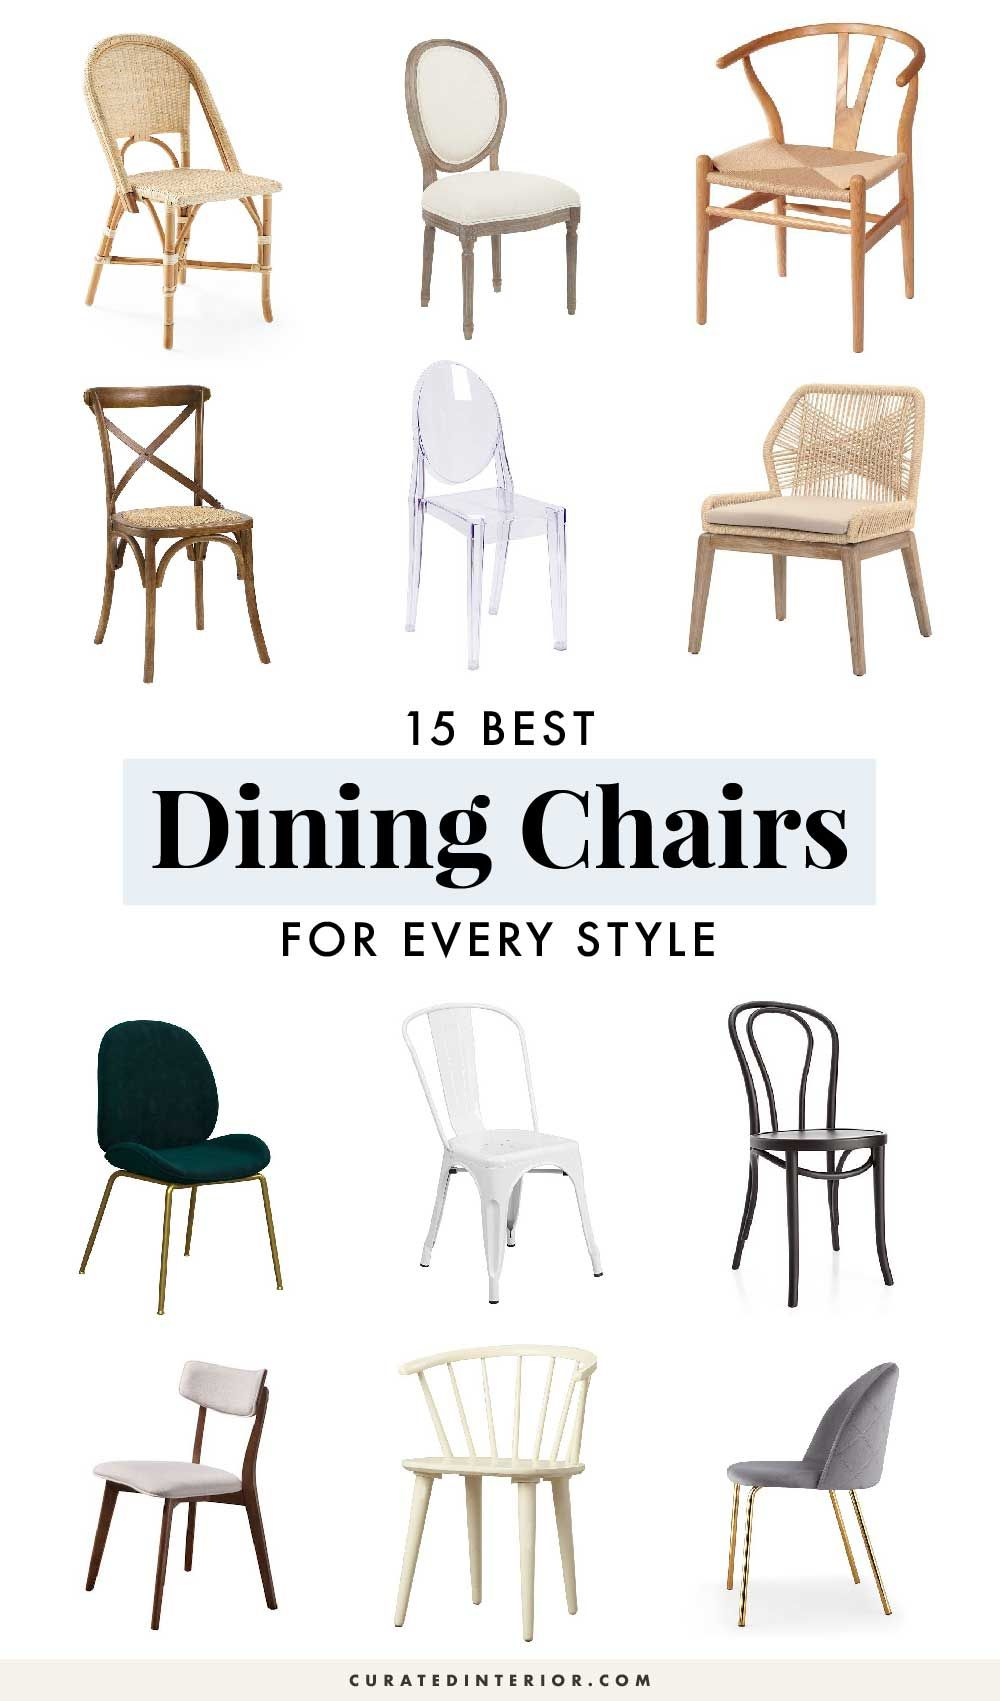 Country Dining Room Chairs 15 Perfect Dining Room Chairs According To Your Style